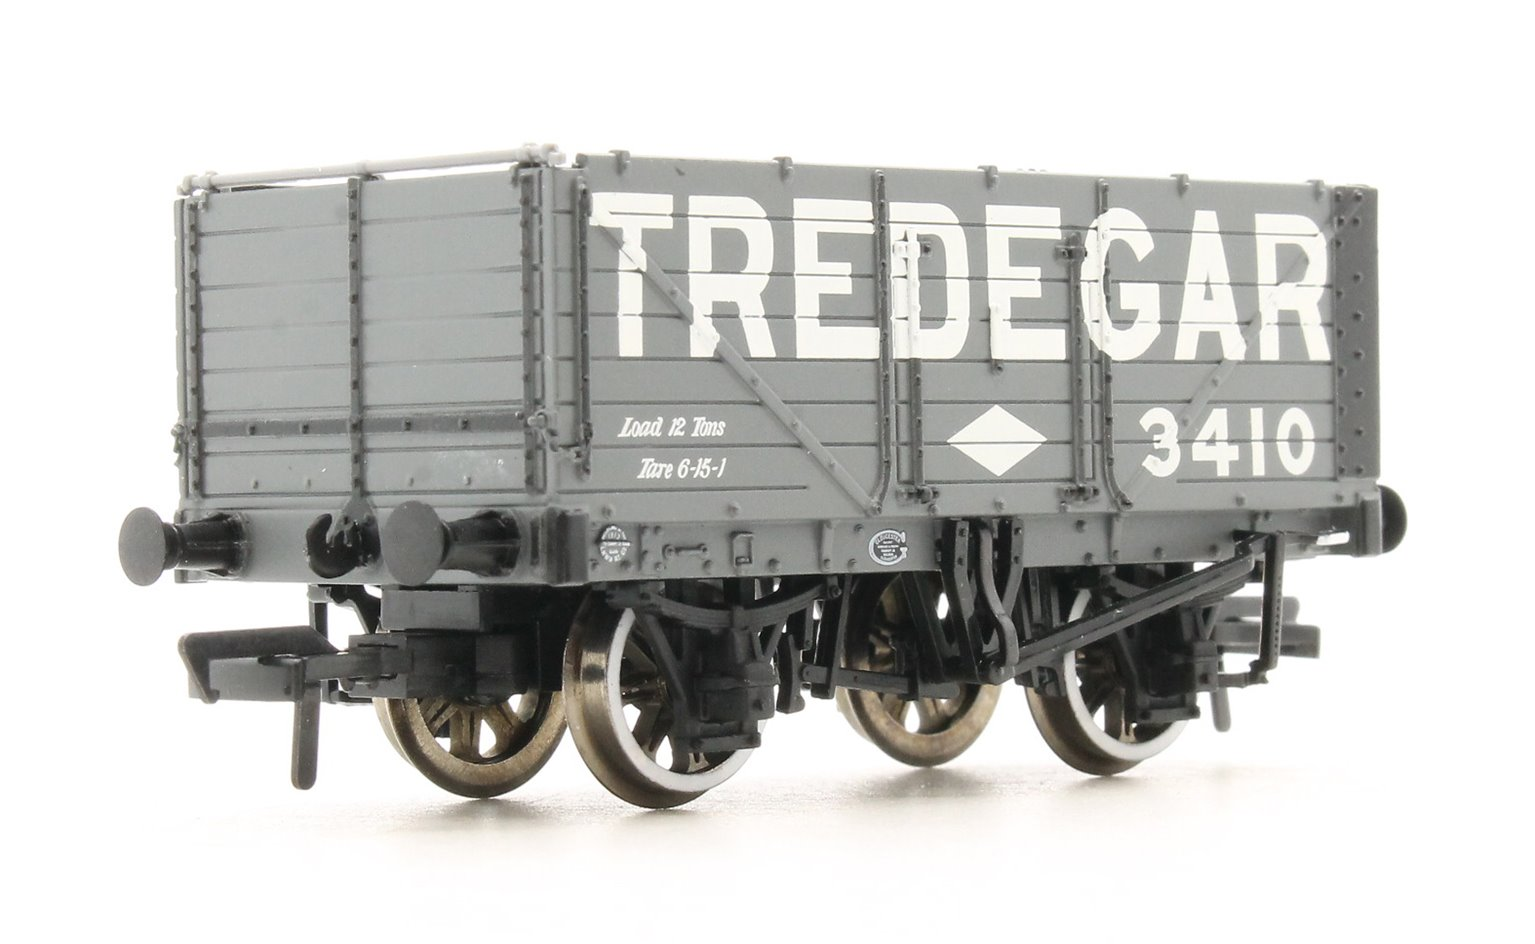 7 Plank End Door Wagon 'Tredegar' with Load